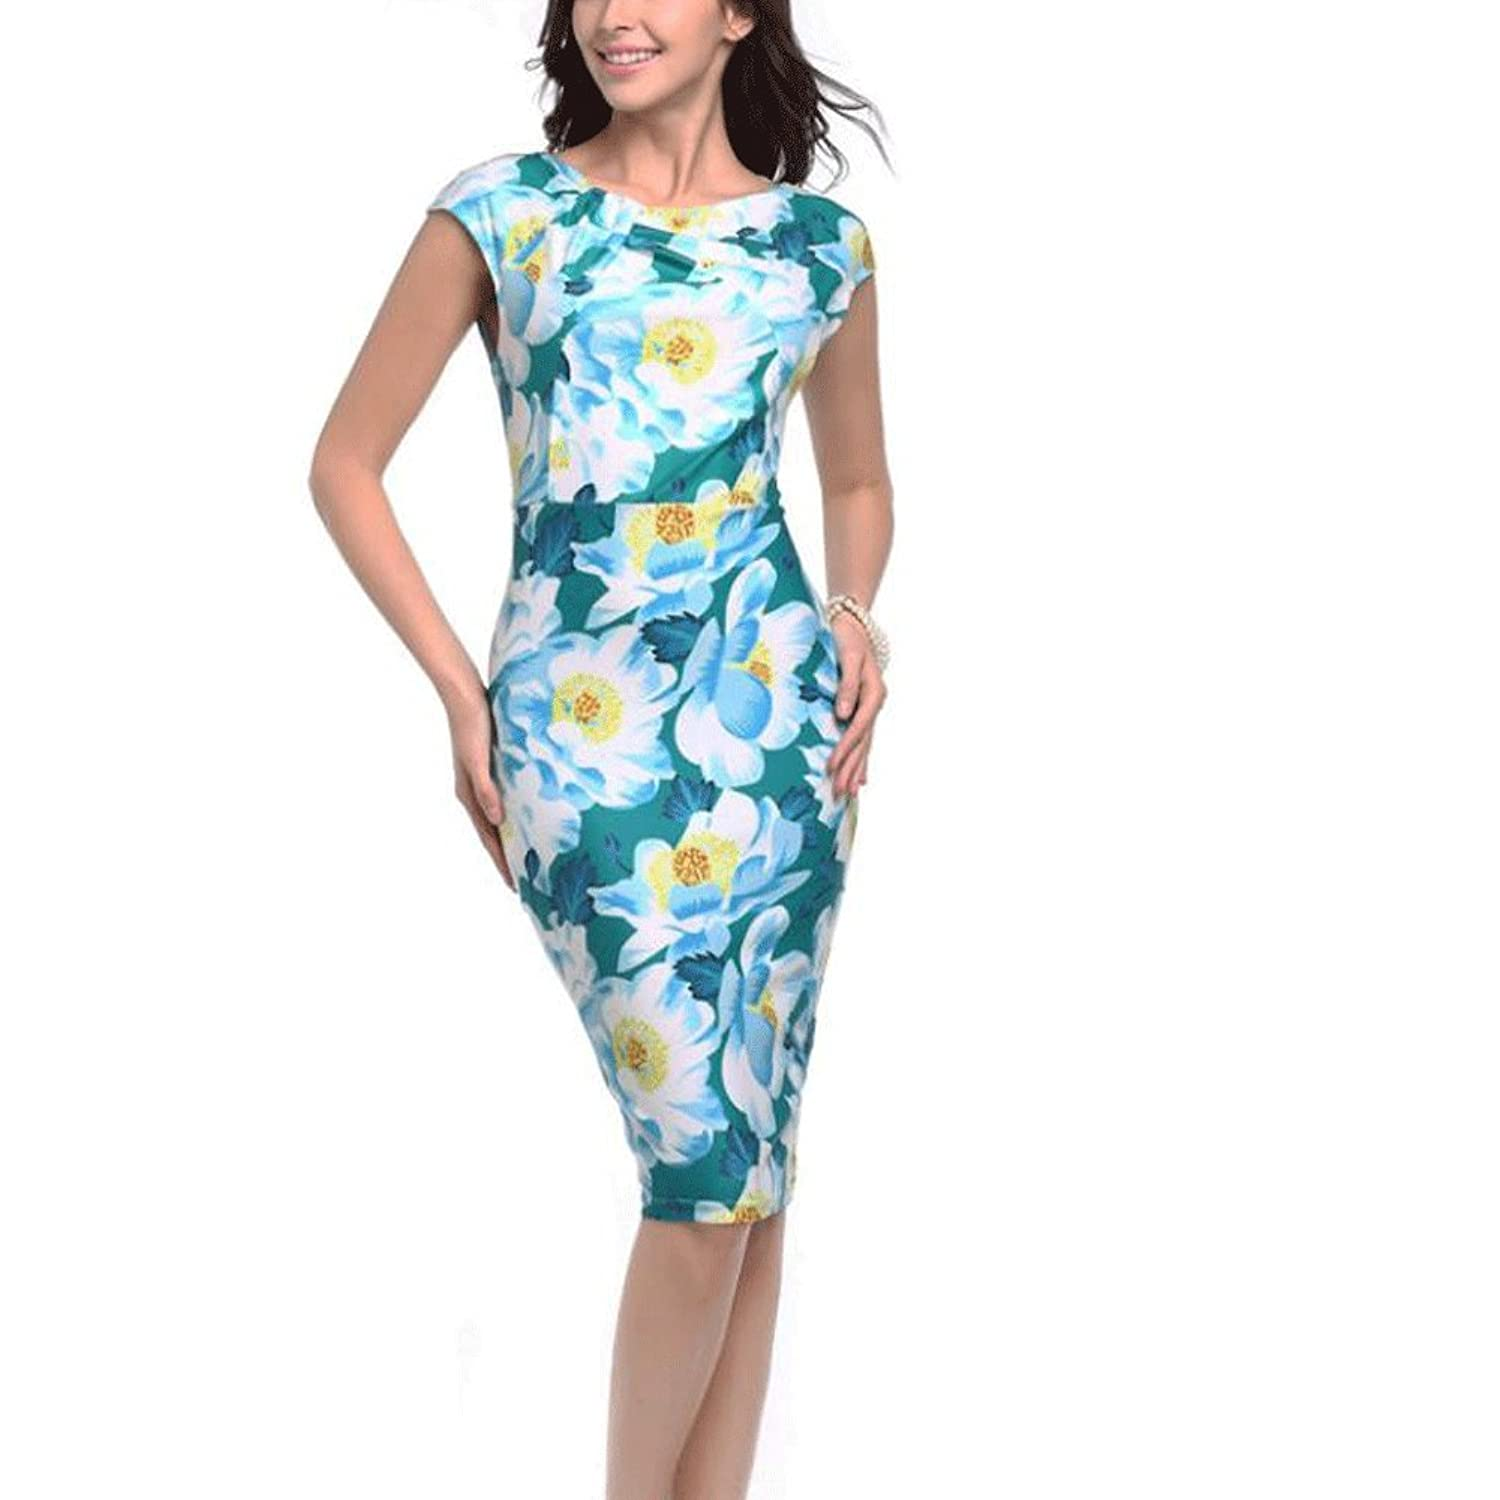 Misaky Lady Dress, Floral Pattern Business Casual Work Party Pencil ...